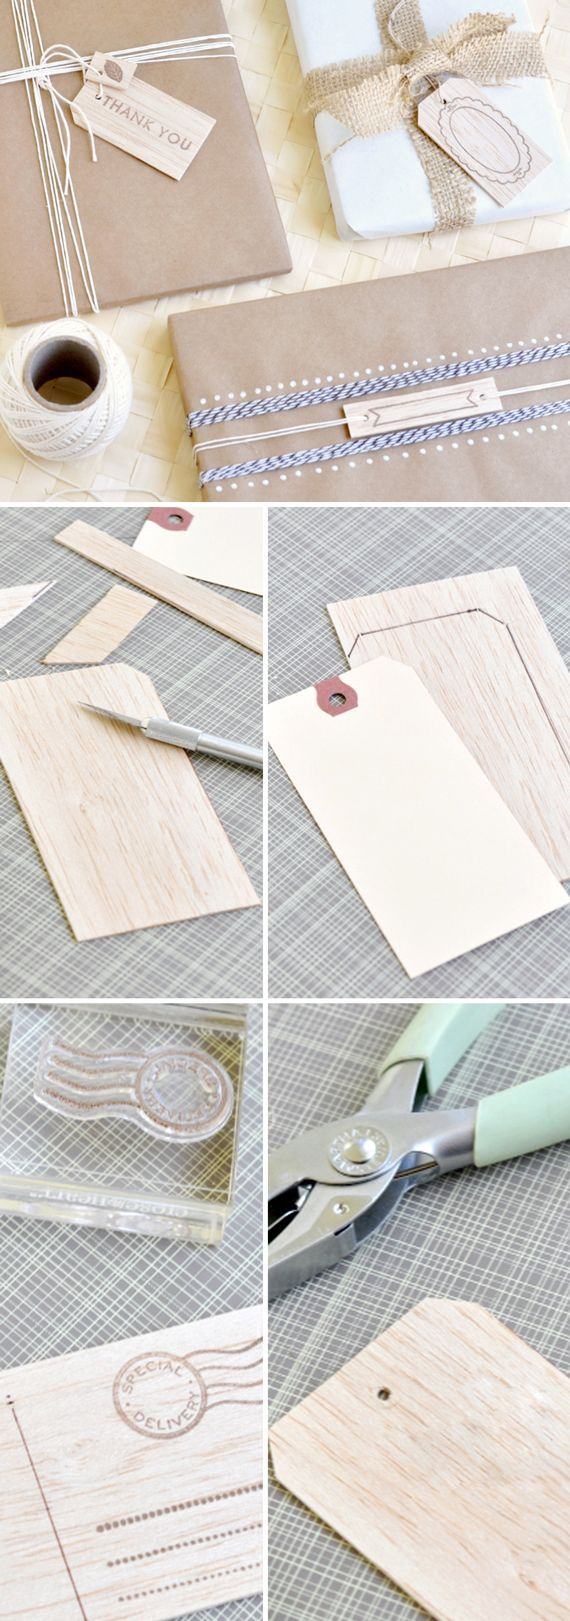 Diy wooden gift tags diy do it yourself pinterest wooden diy wooden gift tags solutioingenieria Choice Image